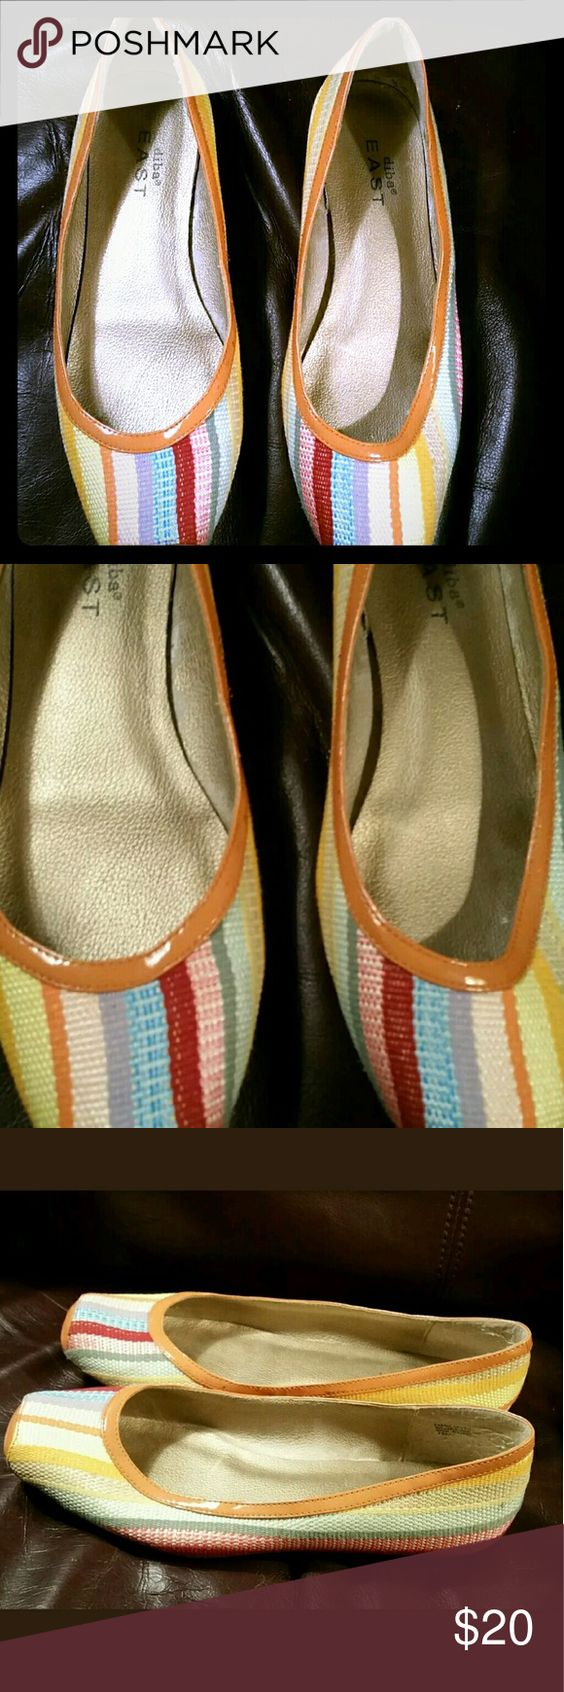 Diba EAST ballet flats  Multi-color Orange 7.5M Diba EAST fabric ballet flats  Size 7.5M  Multi-color cloth fabric uppers, rubber sole  Orange patent trim  Good pre-owned condition  Clean insides, bottoms show normal wear Diba EAST  Shoes Flats & Loafers